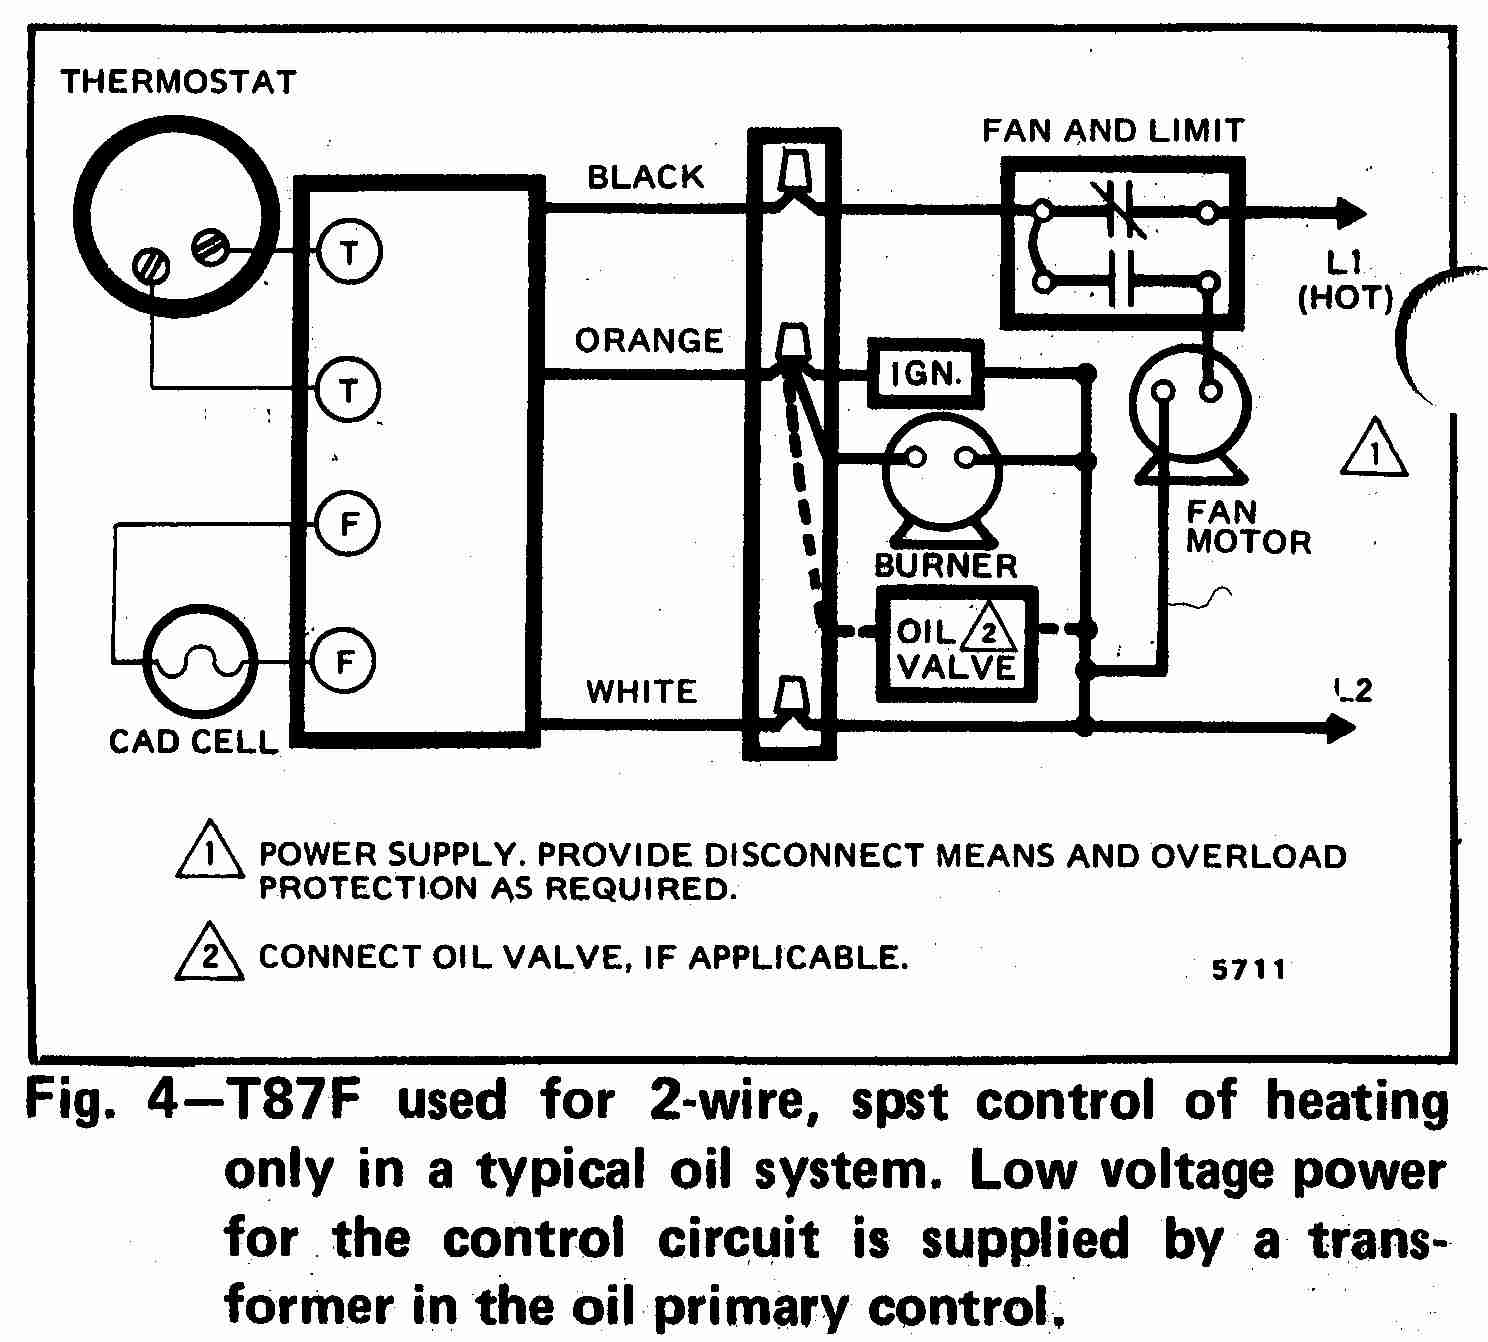 TT_T87F_0002_2W_DJF room thermostat wiring diagrams for hvac systems 5 Wire Thermostat Wiring at readyjetset.co